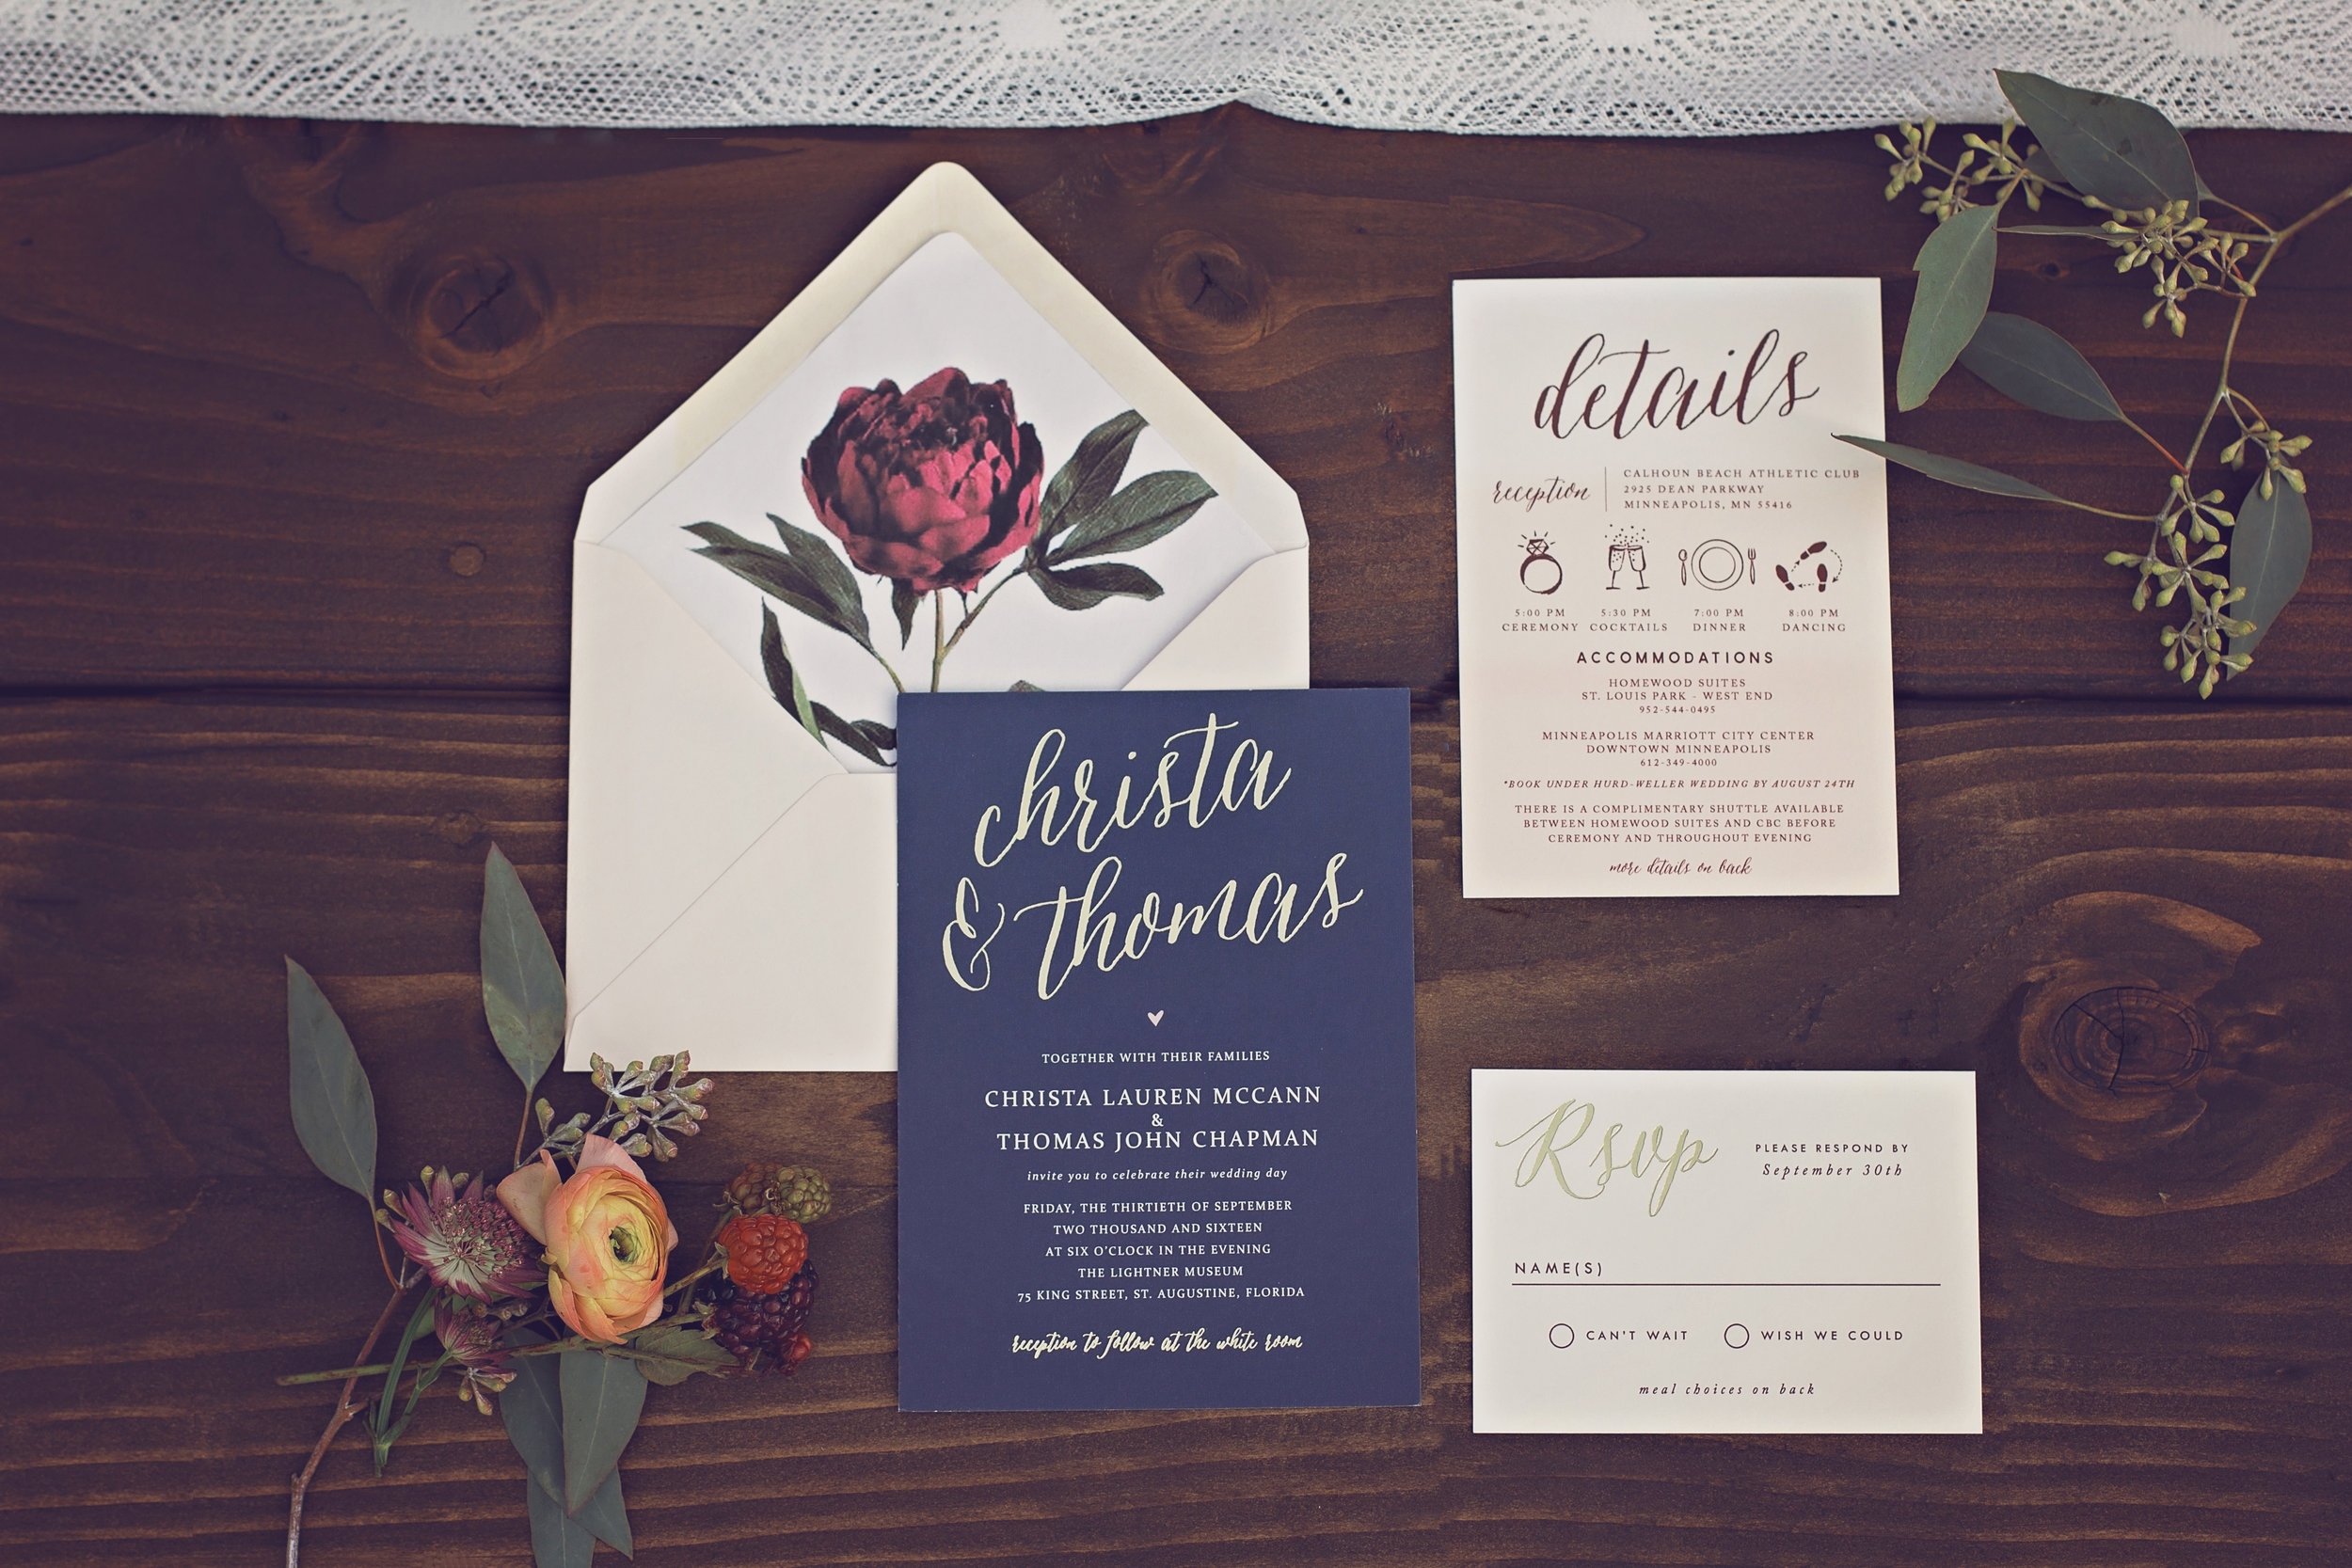 MINNESOTA WEDDING PHOTOGRAPHER   BLOOMING CREATIONS   MEANINGFUL MOMENTS EVENT PLANNING & COORDINATION   Ginger P. Designs  INTUITION WEDDINGS BY ID PHOTOGRAPHY